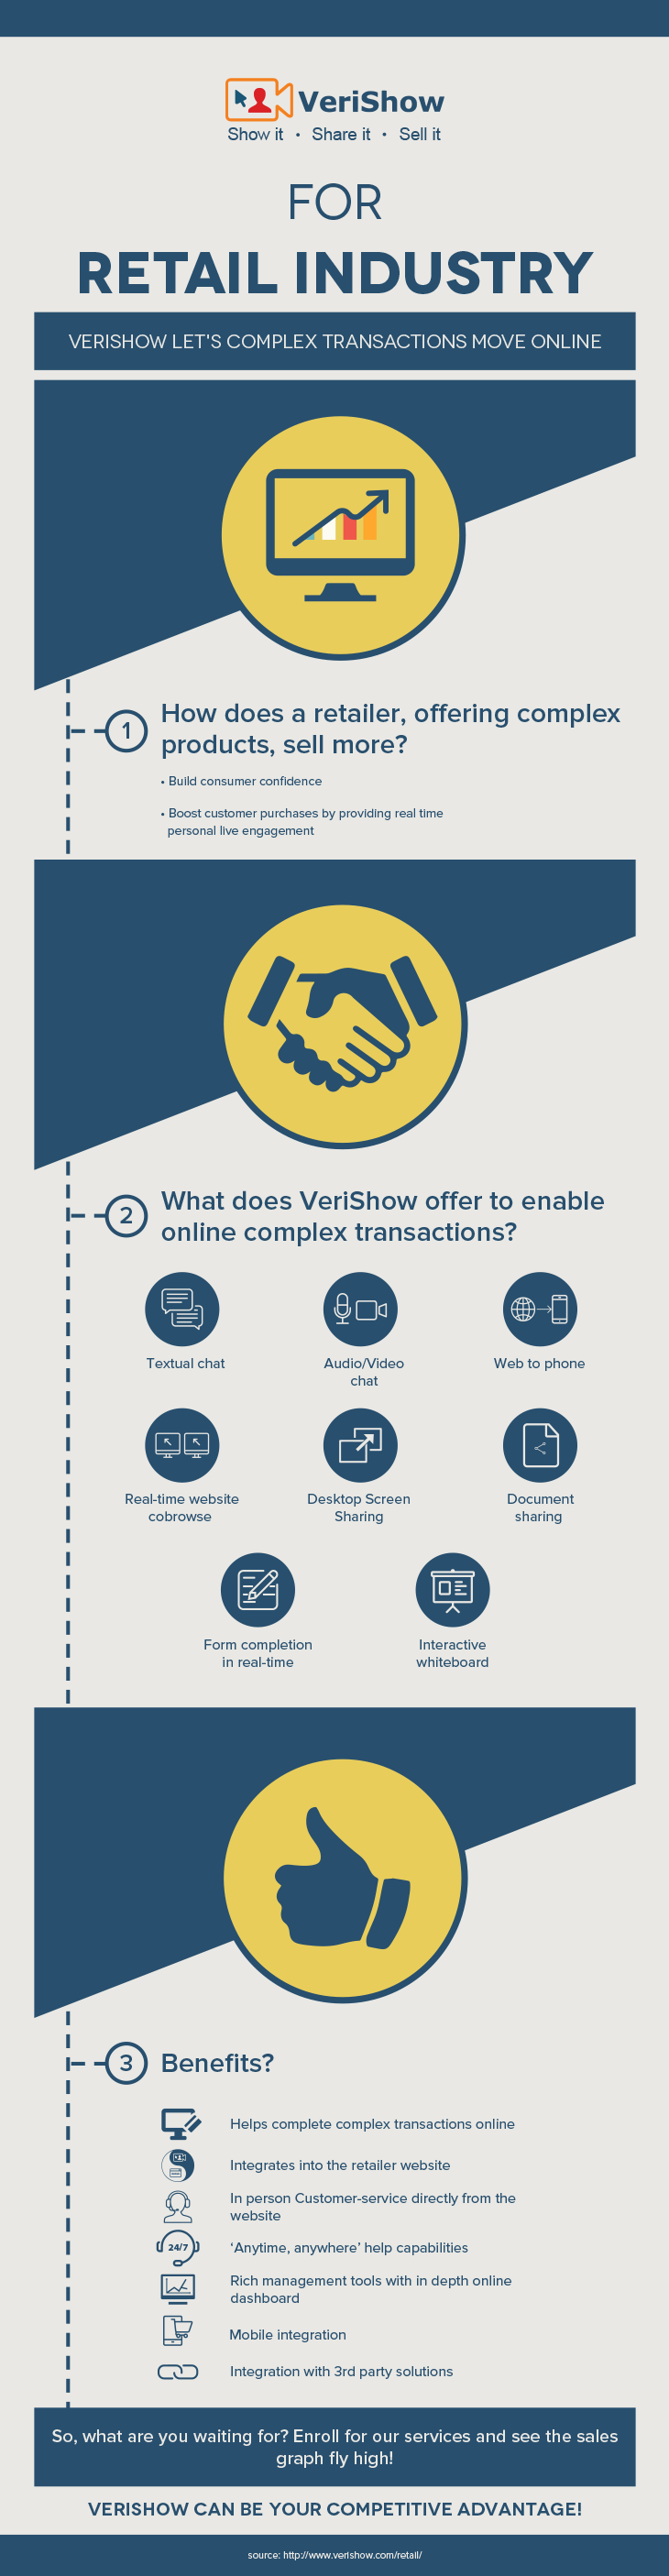 VeriShow for retail industry infographic